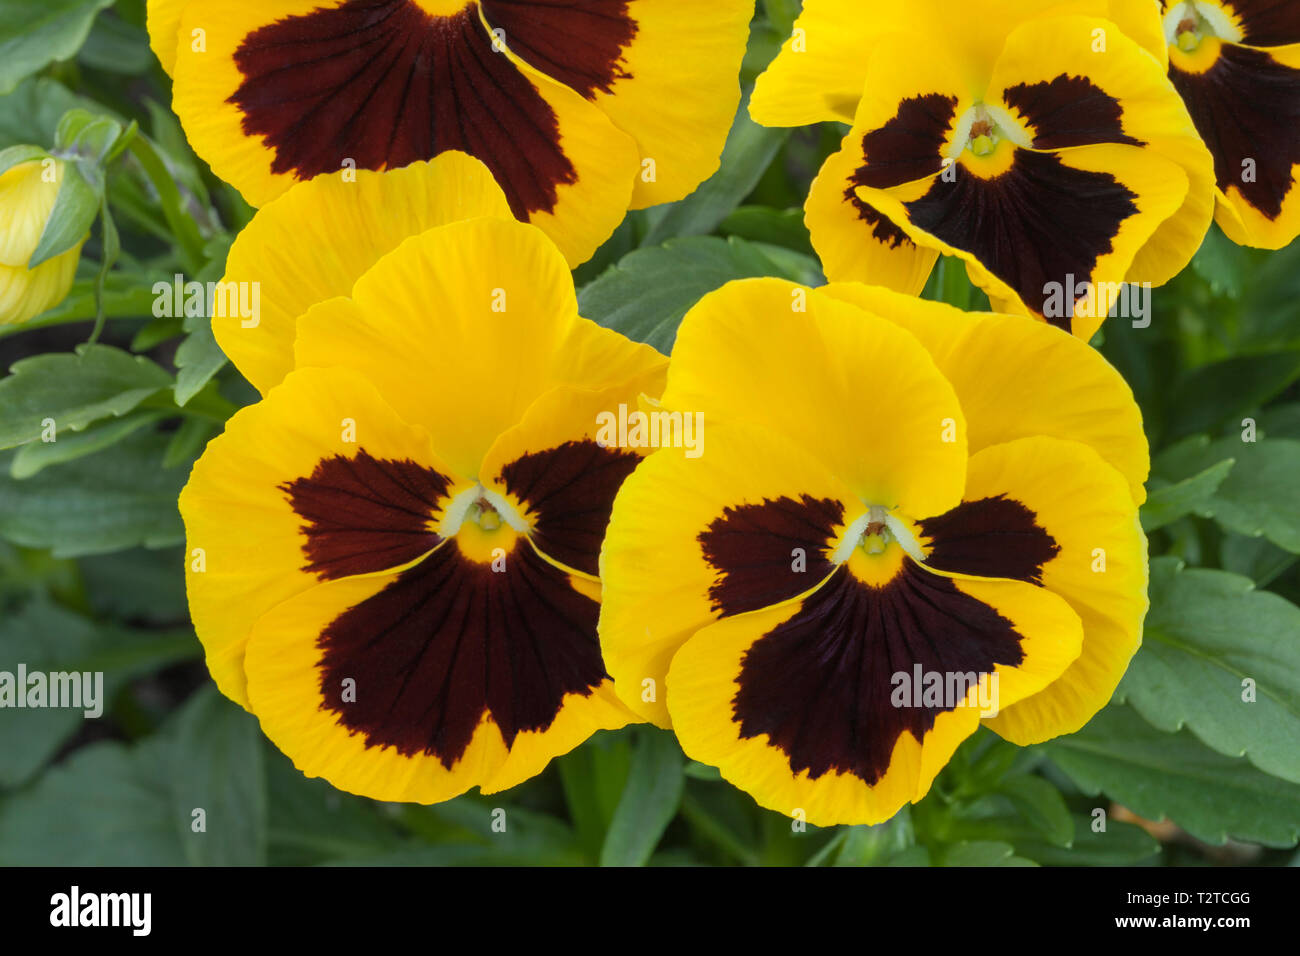 Pansy 'Yellow Blotch' - Stock Image